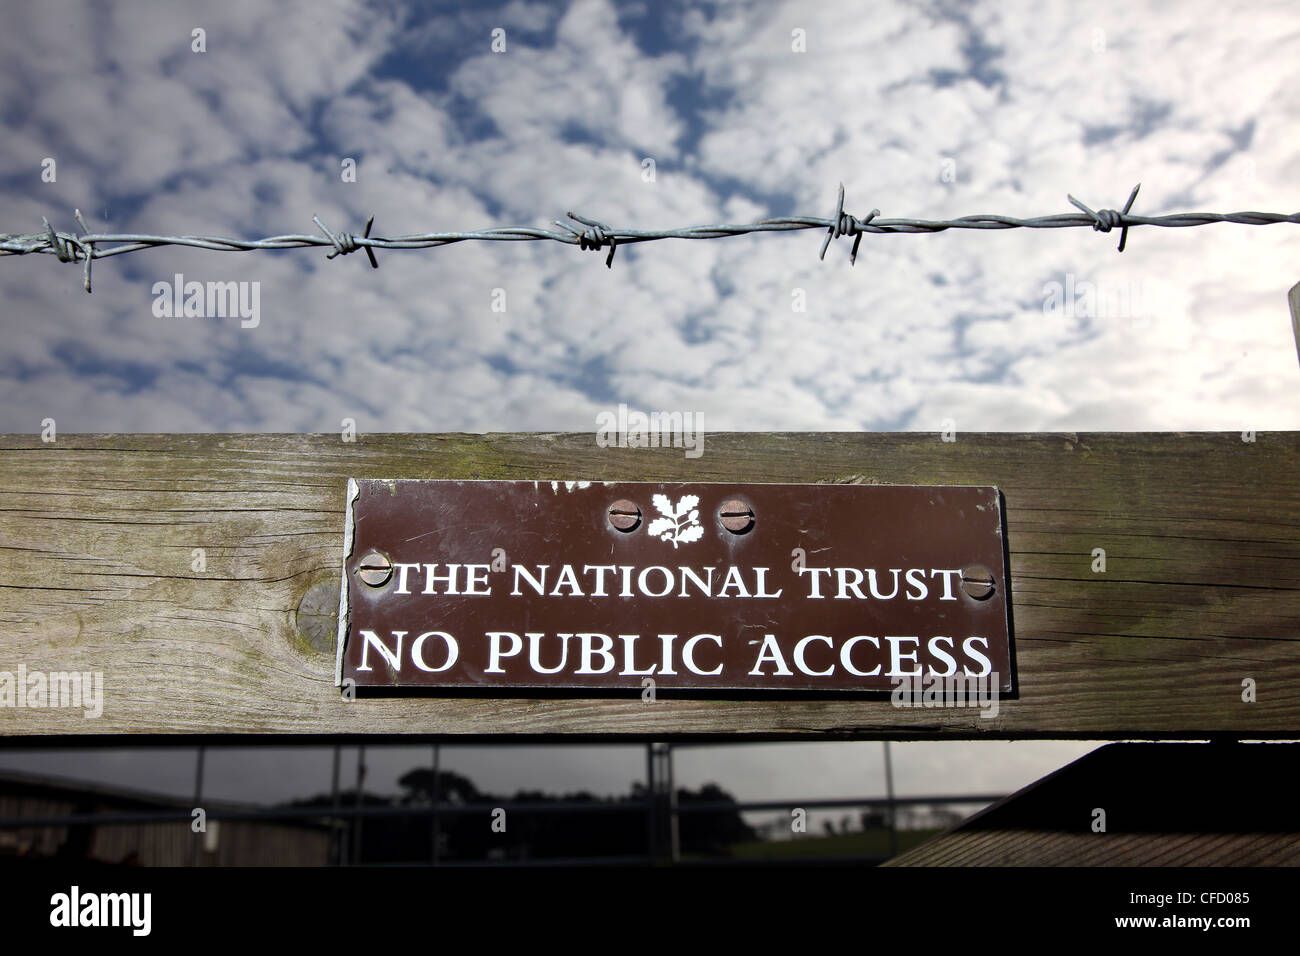 Pic by Mark Passmore/www.markpassmore.com A sign for The National Trust warning the public that there is NO PUBLIC - Stock Image